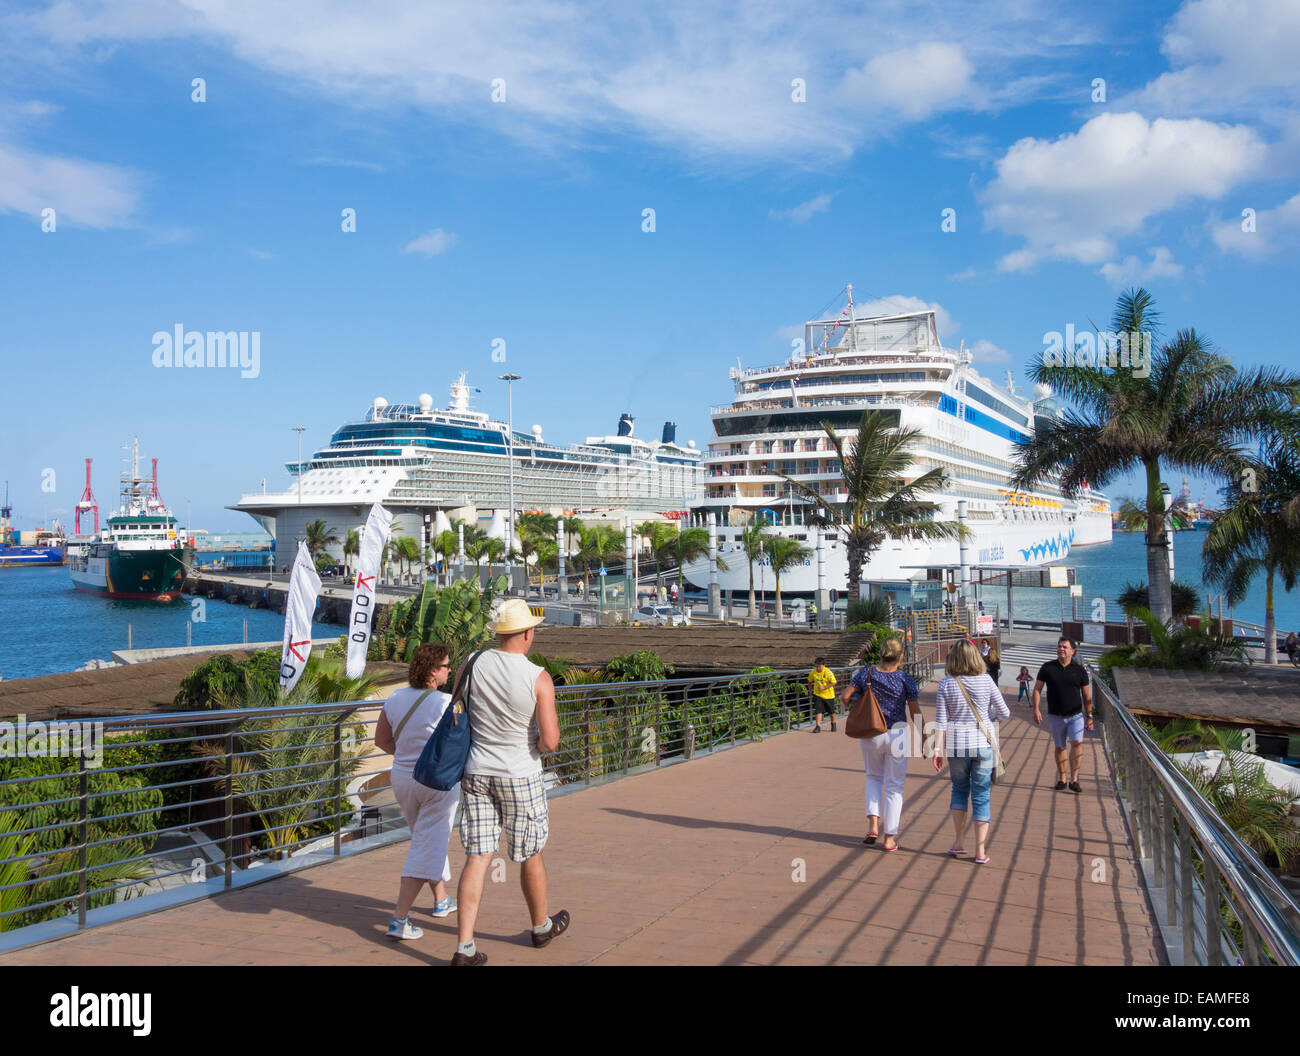 View of cruise ships in las palmas port from nearby shopping mall stock photo royalty free - Port of las palmas gran canaria ...